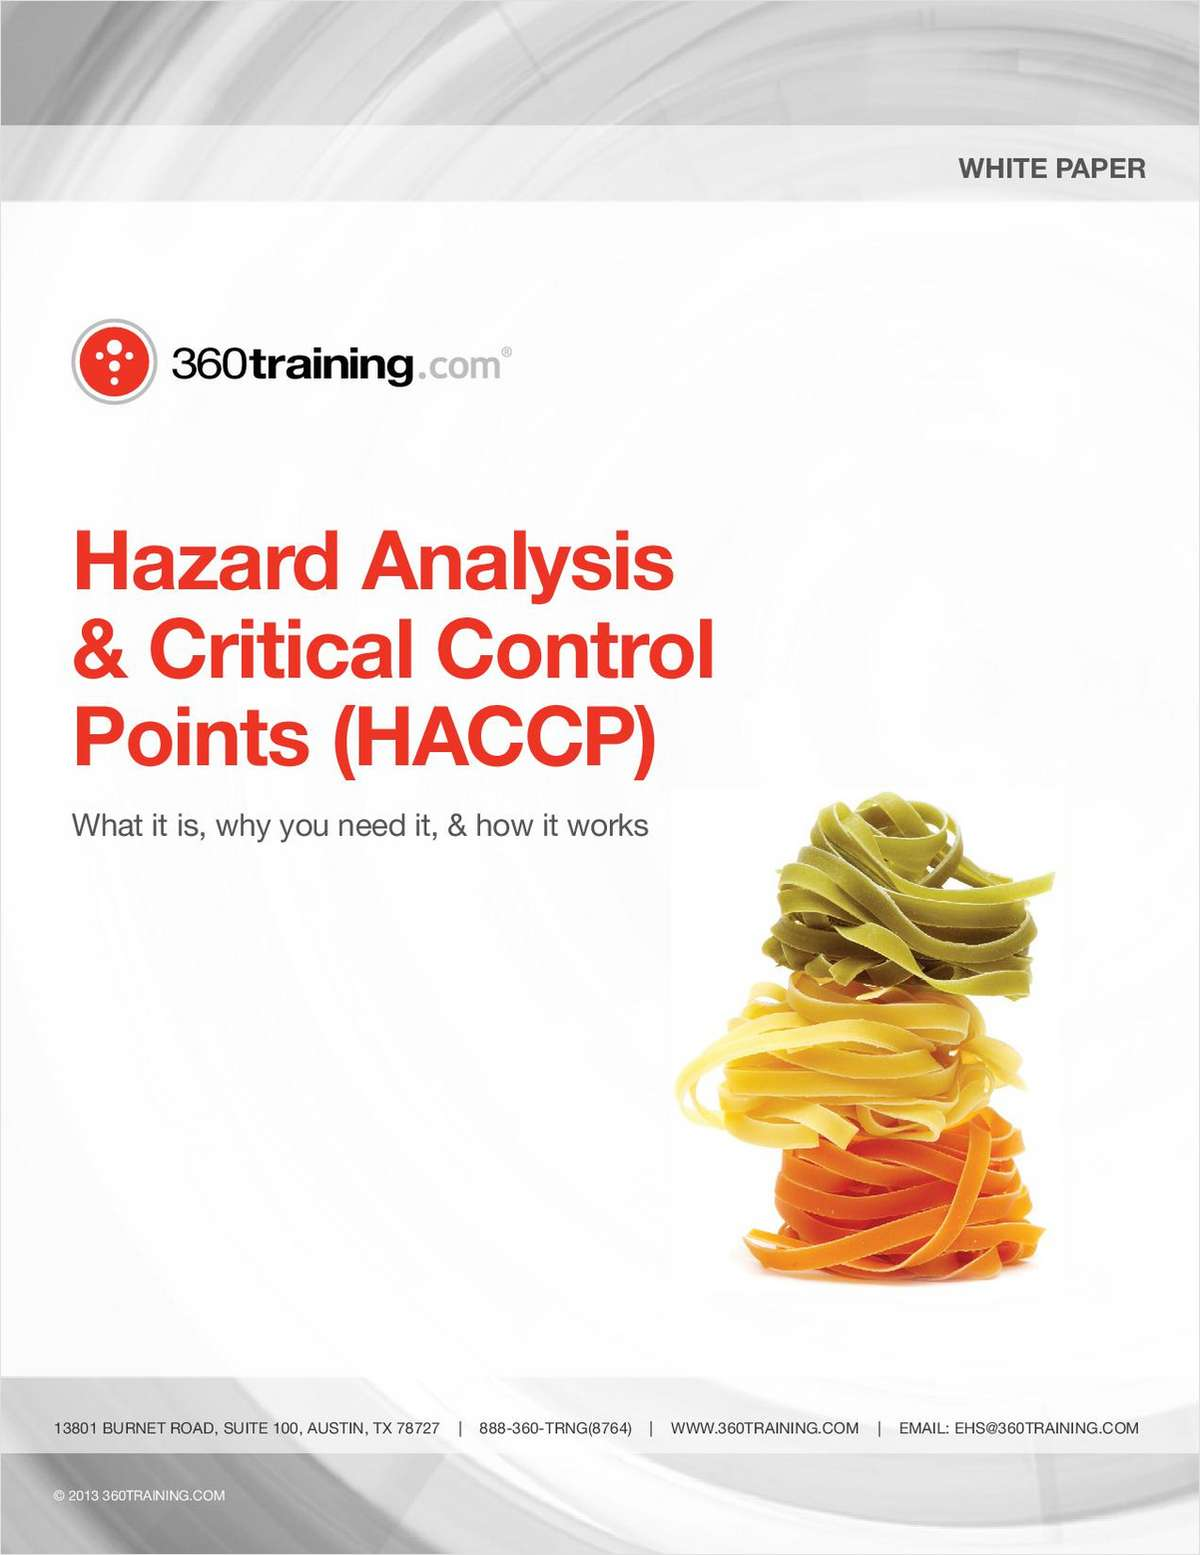 Hazard Analysis & Critical Control Points (HACCP)